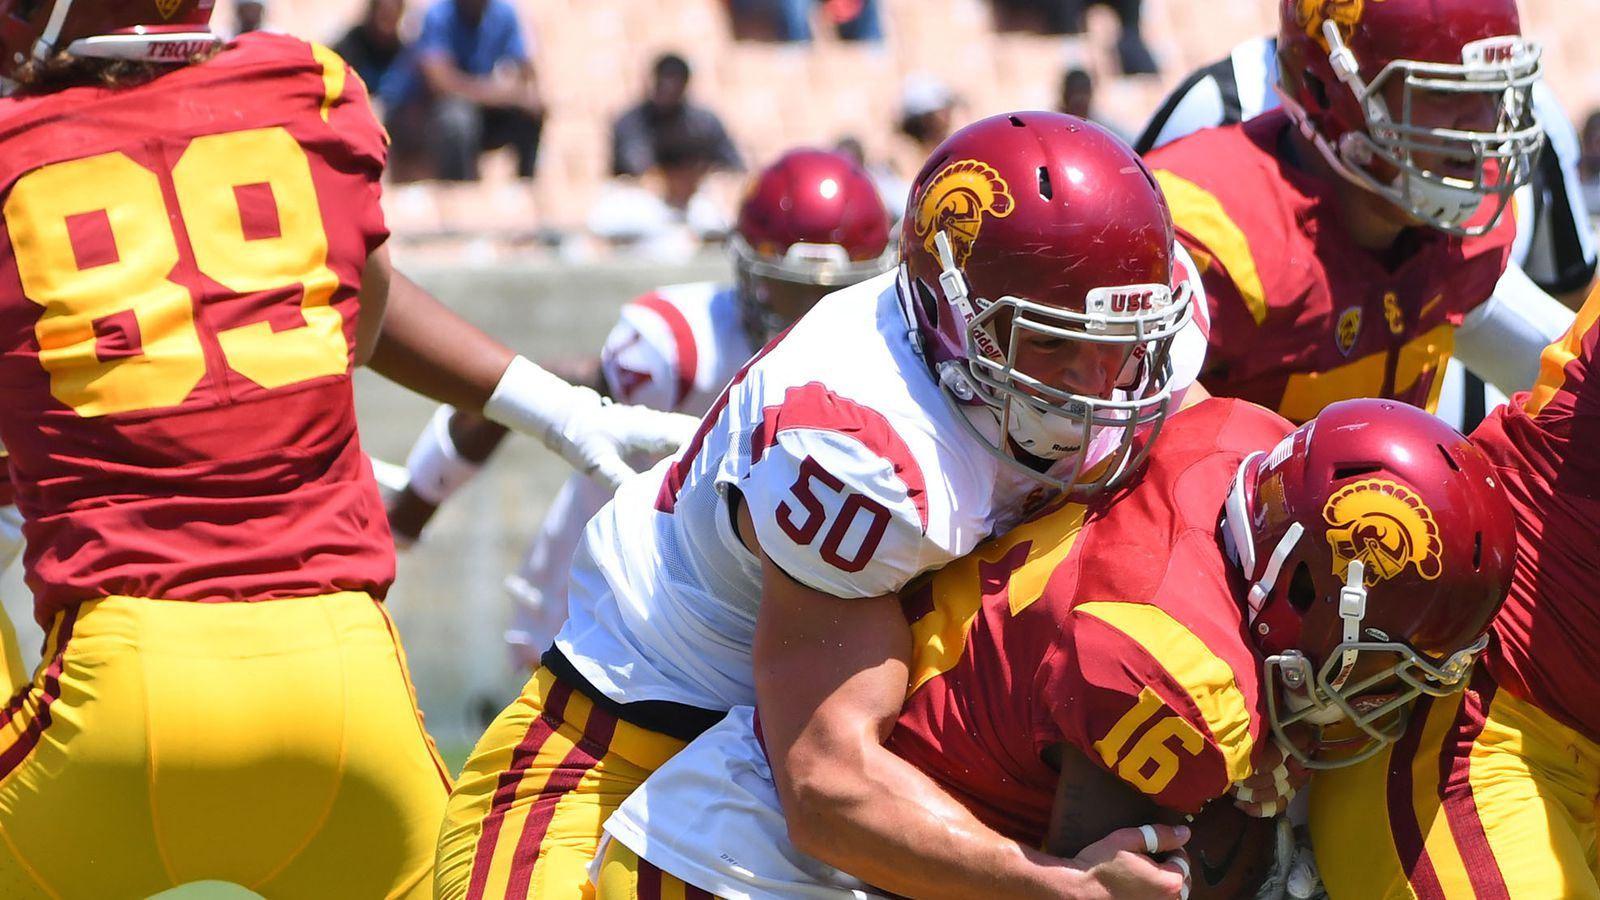 The official Football page for the University of Southern California Trojans